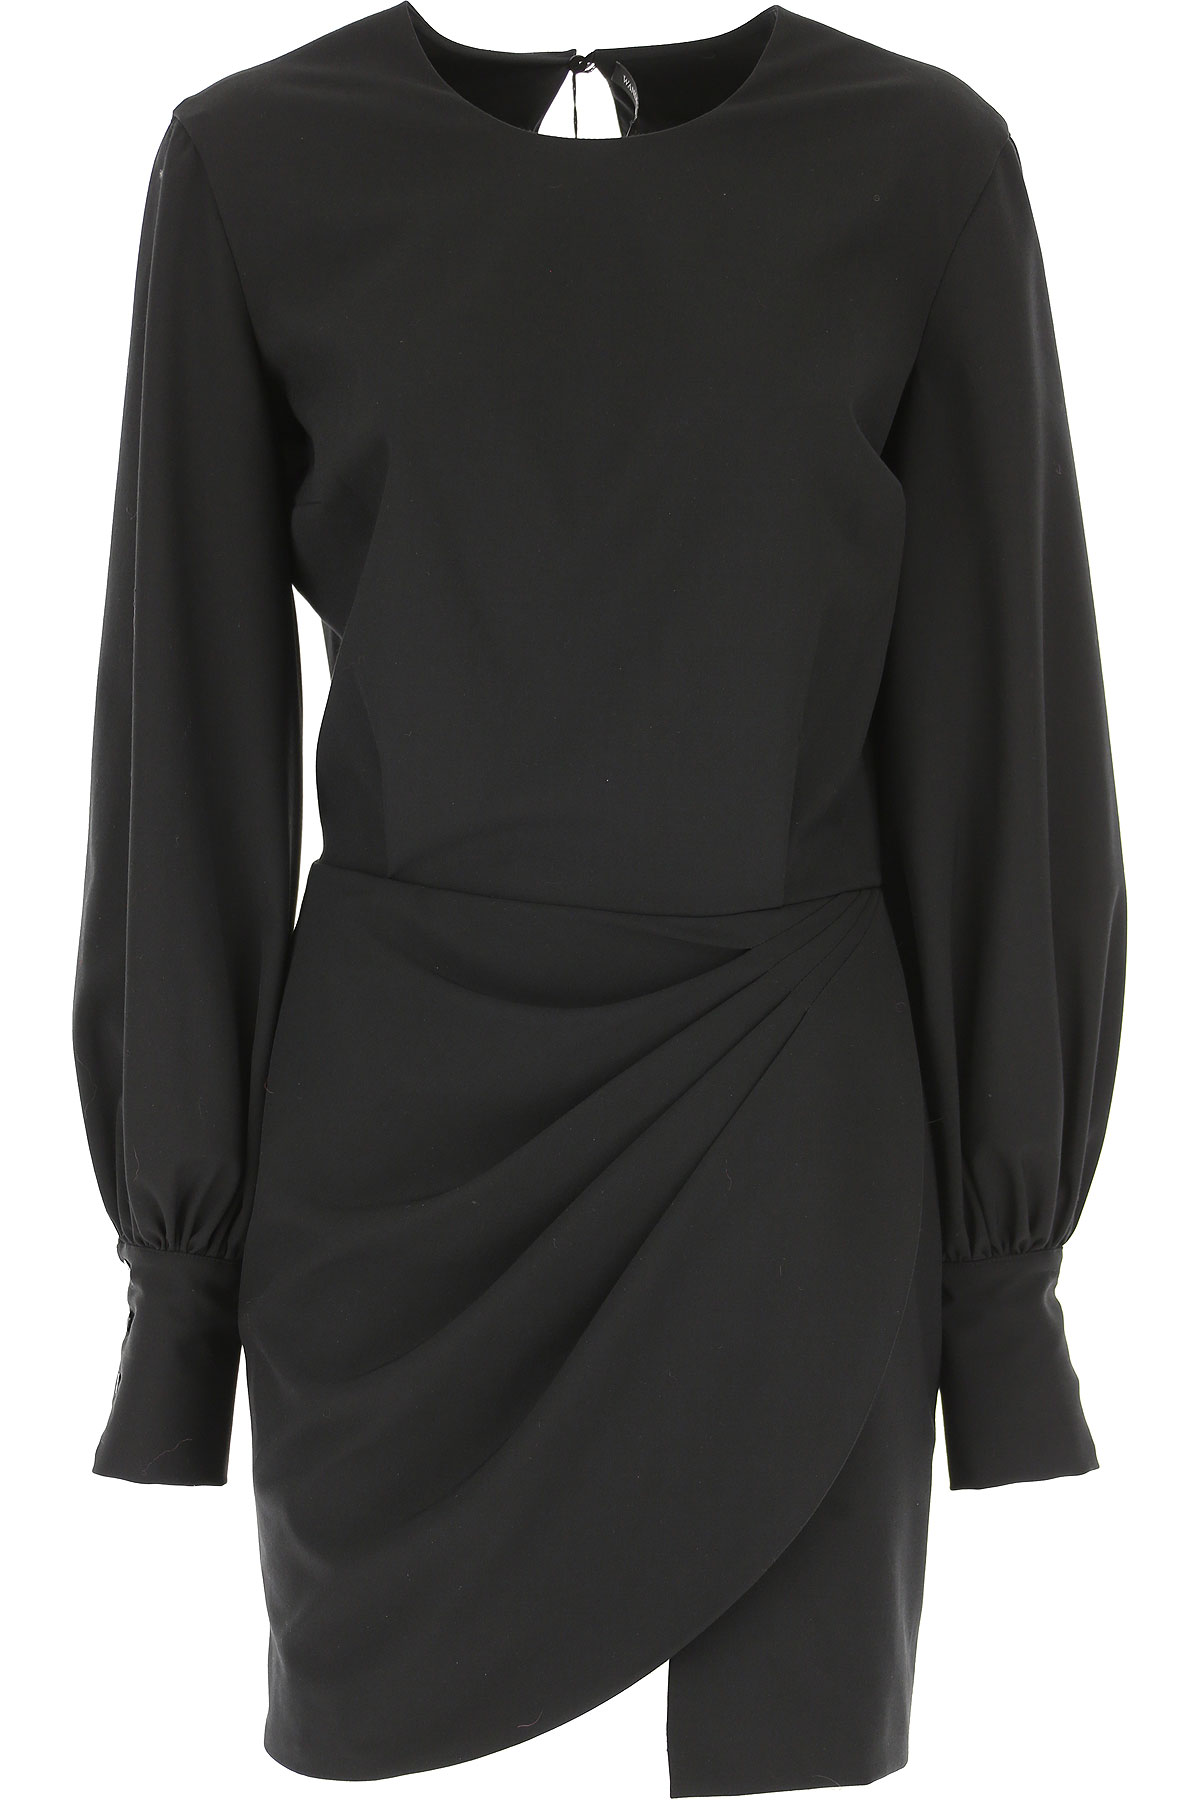 Image of Wandering Dress for Women, Evening Cocktail Party, Black, polyamide, 2017, 4 6